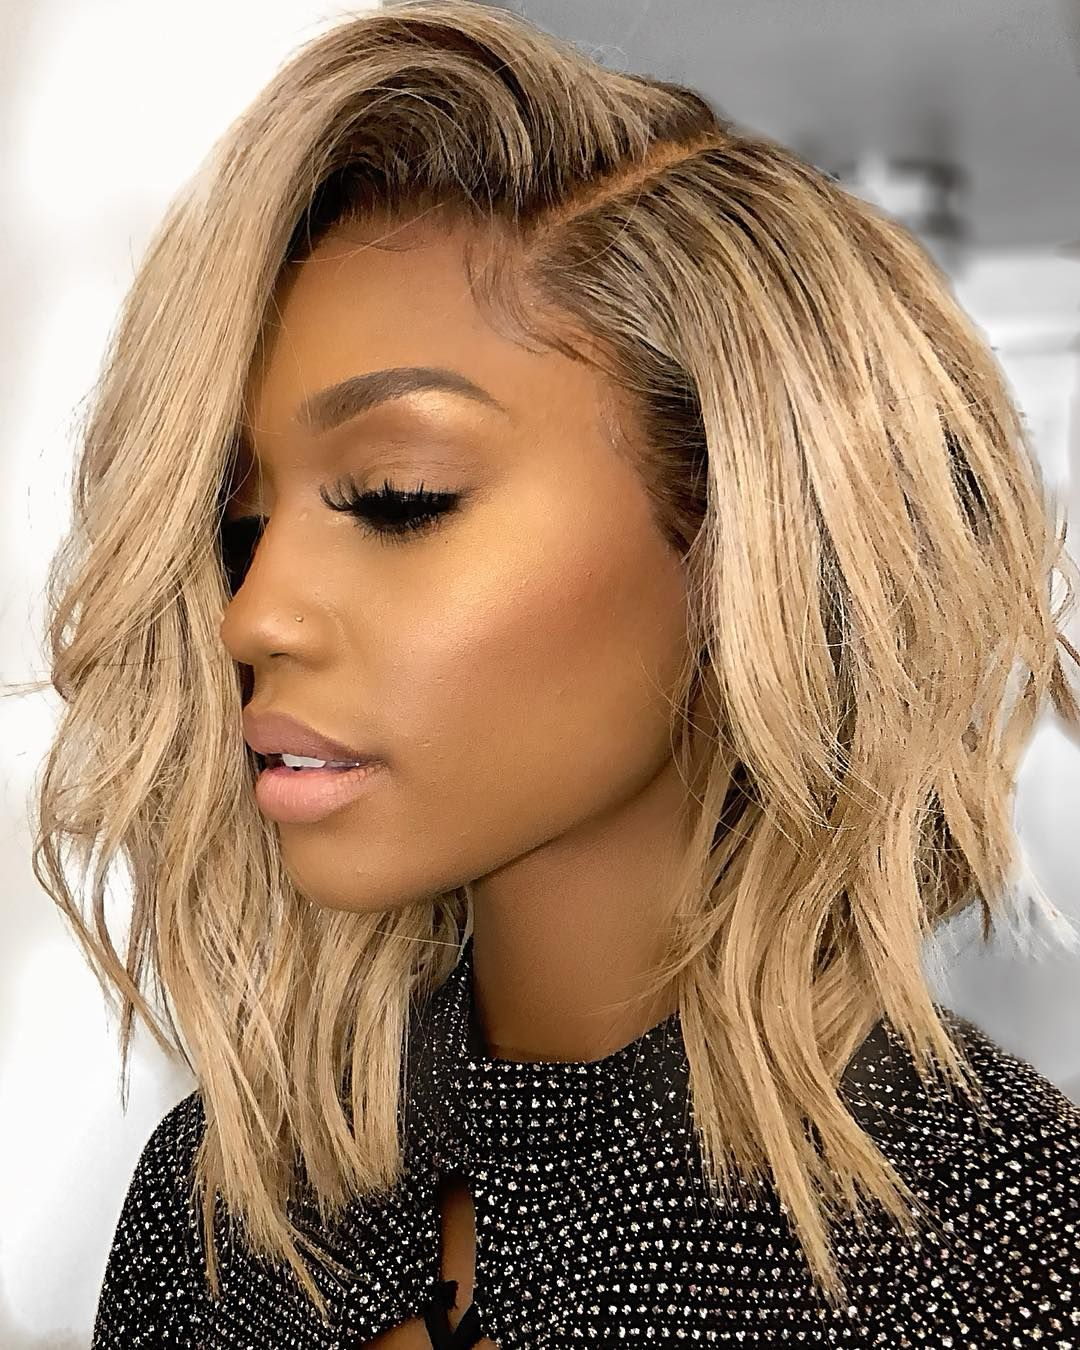 Shoulder length wigs for black women lace front wigs omber brown wigs  blonde wigs african american wigs human hair wigs ab0590f009